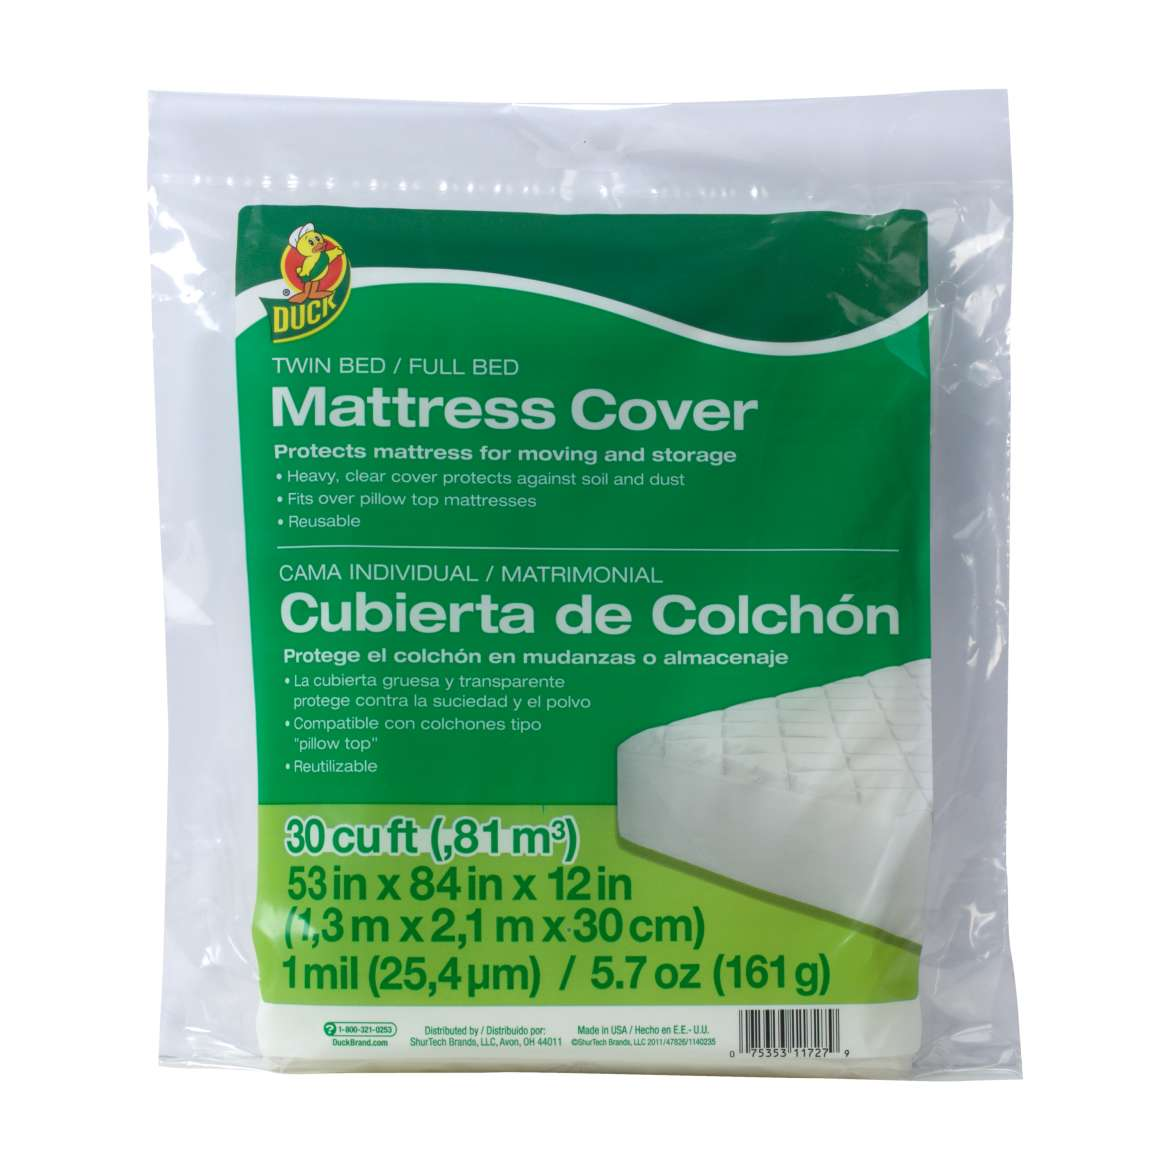 Twin/Full Bed Mattress Cover